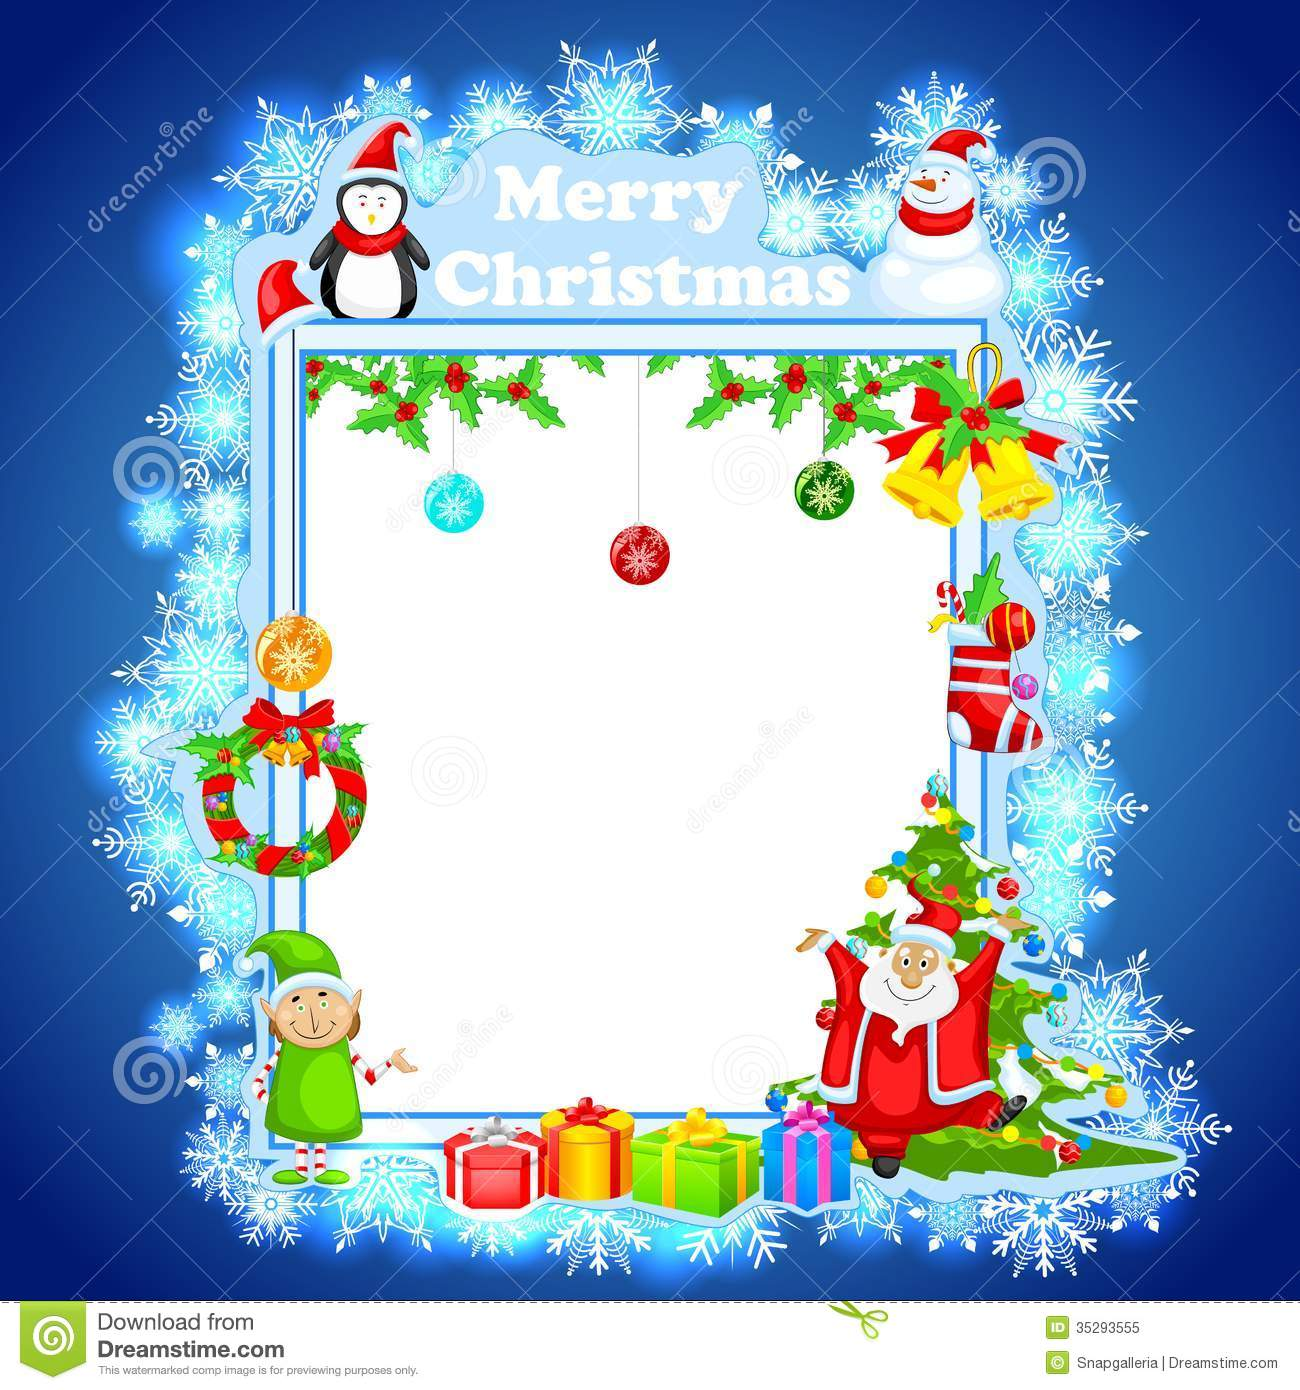 santa claus wishing merry christmas stock vector illustration of present invitation 35293555